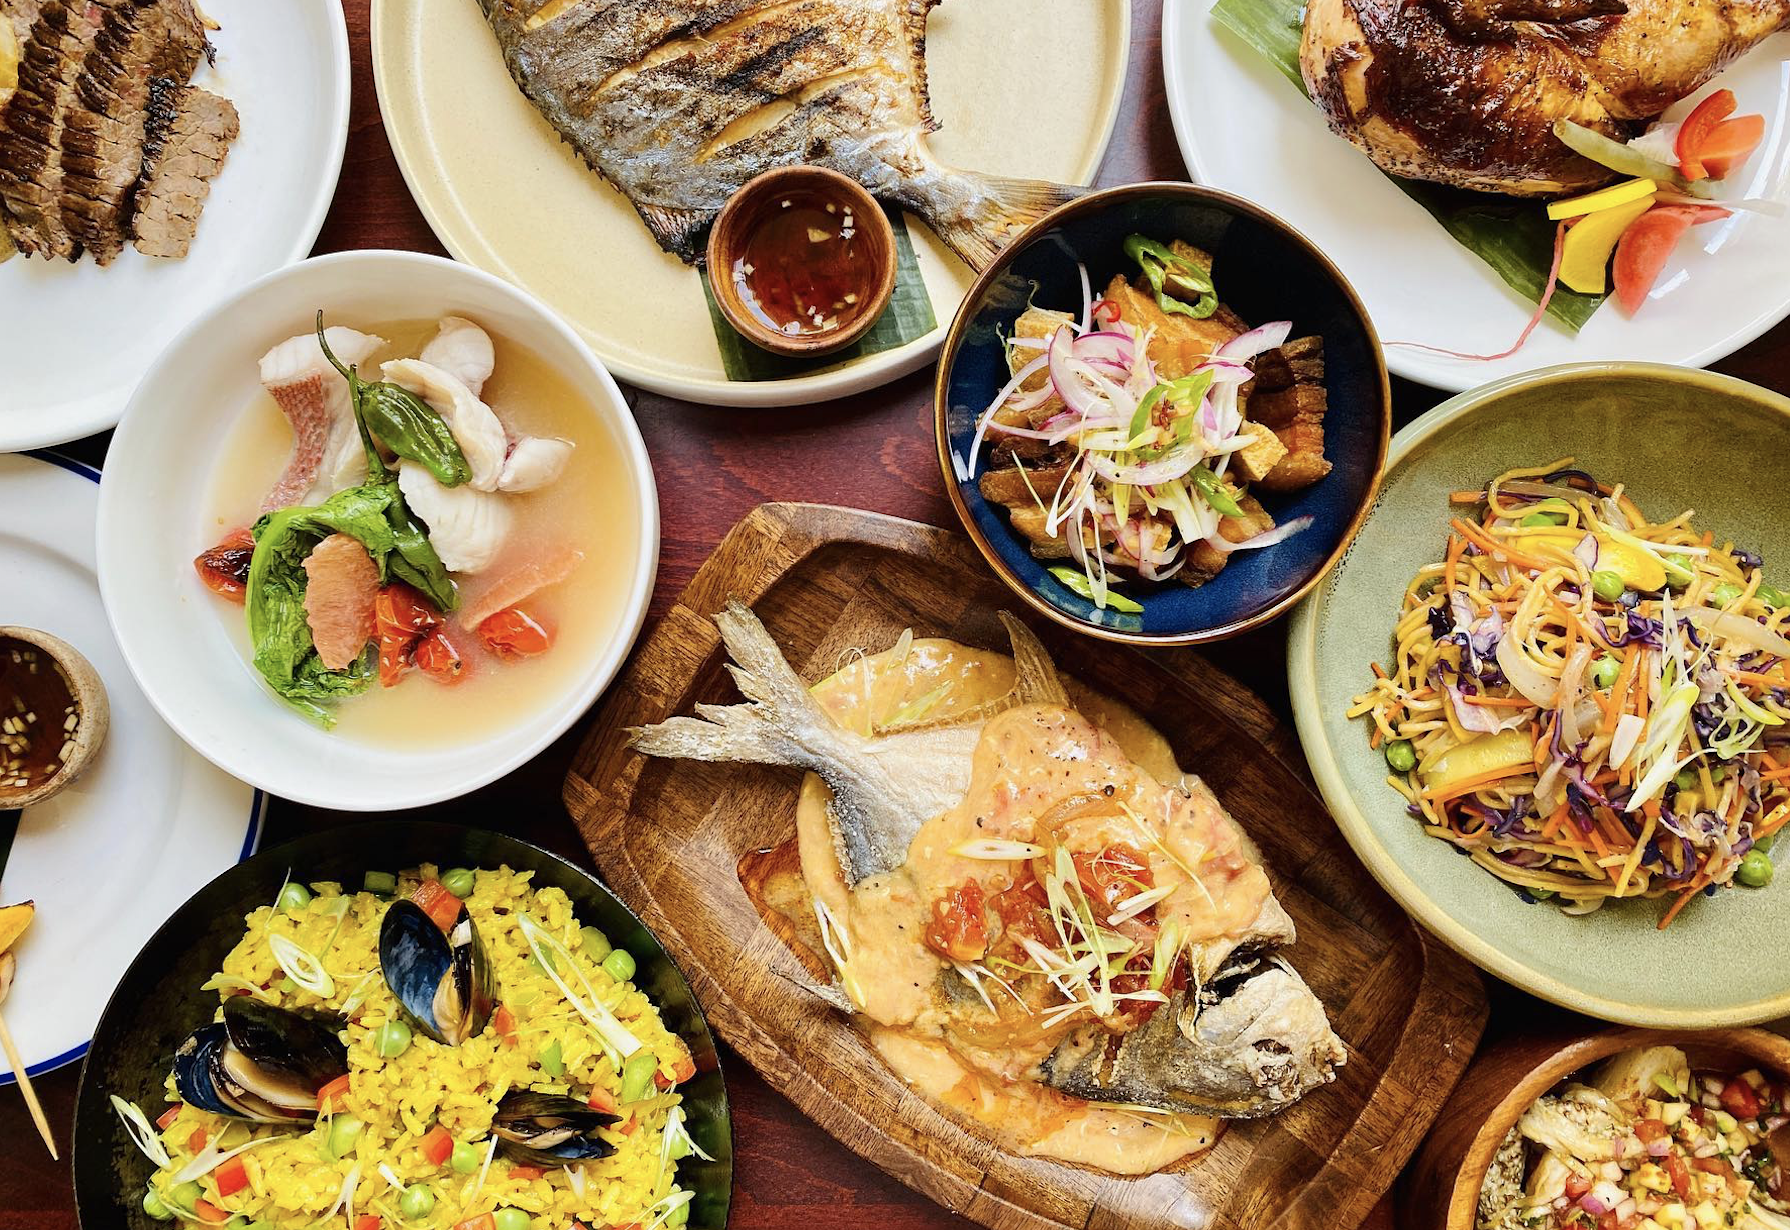 Fried fish and other Filipino dishes at Musang in Seattle